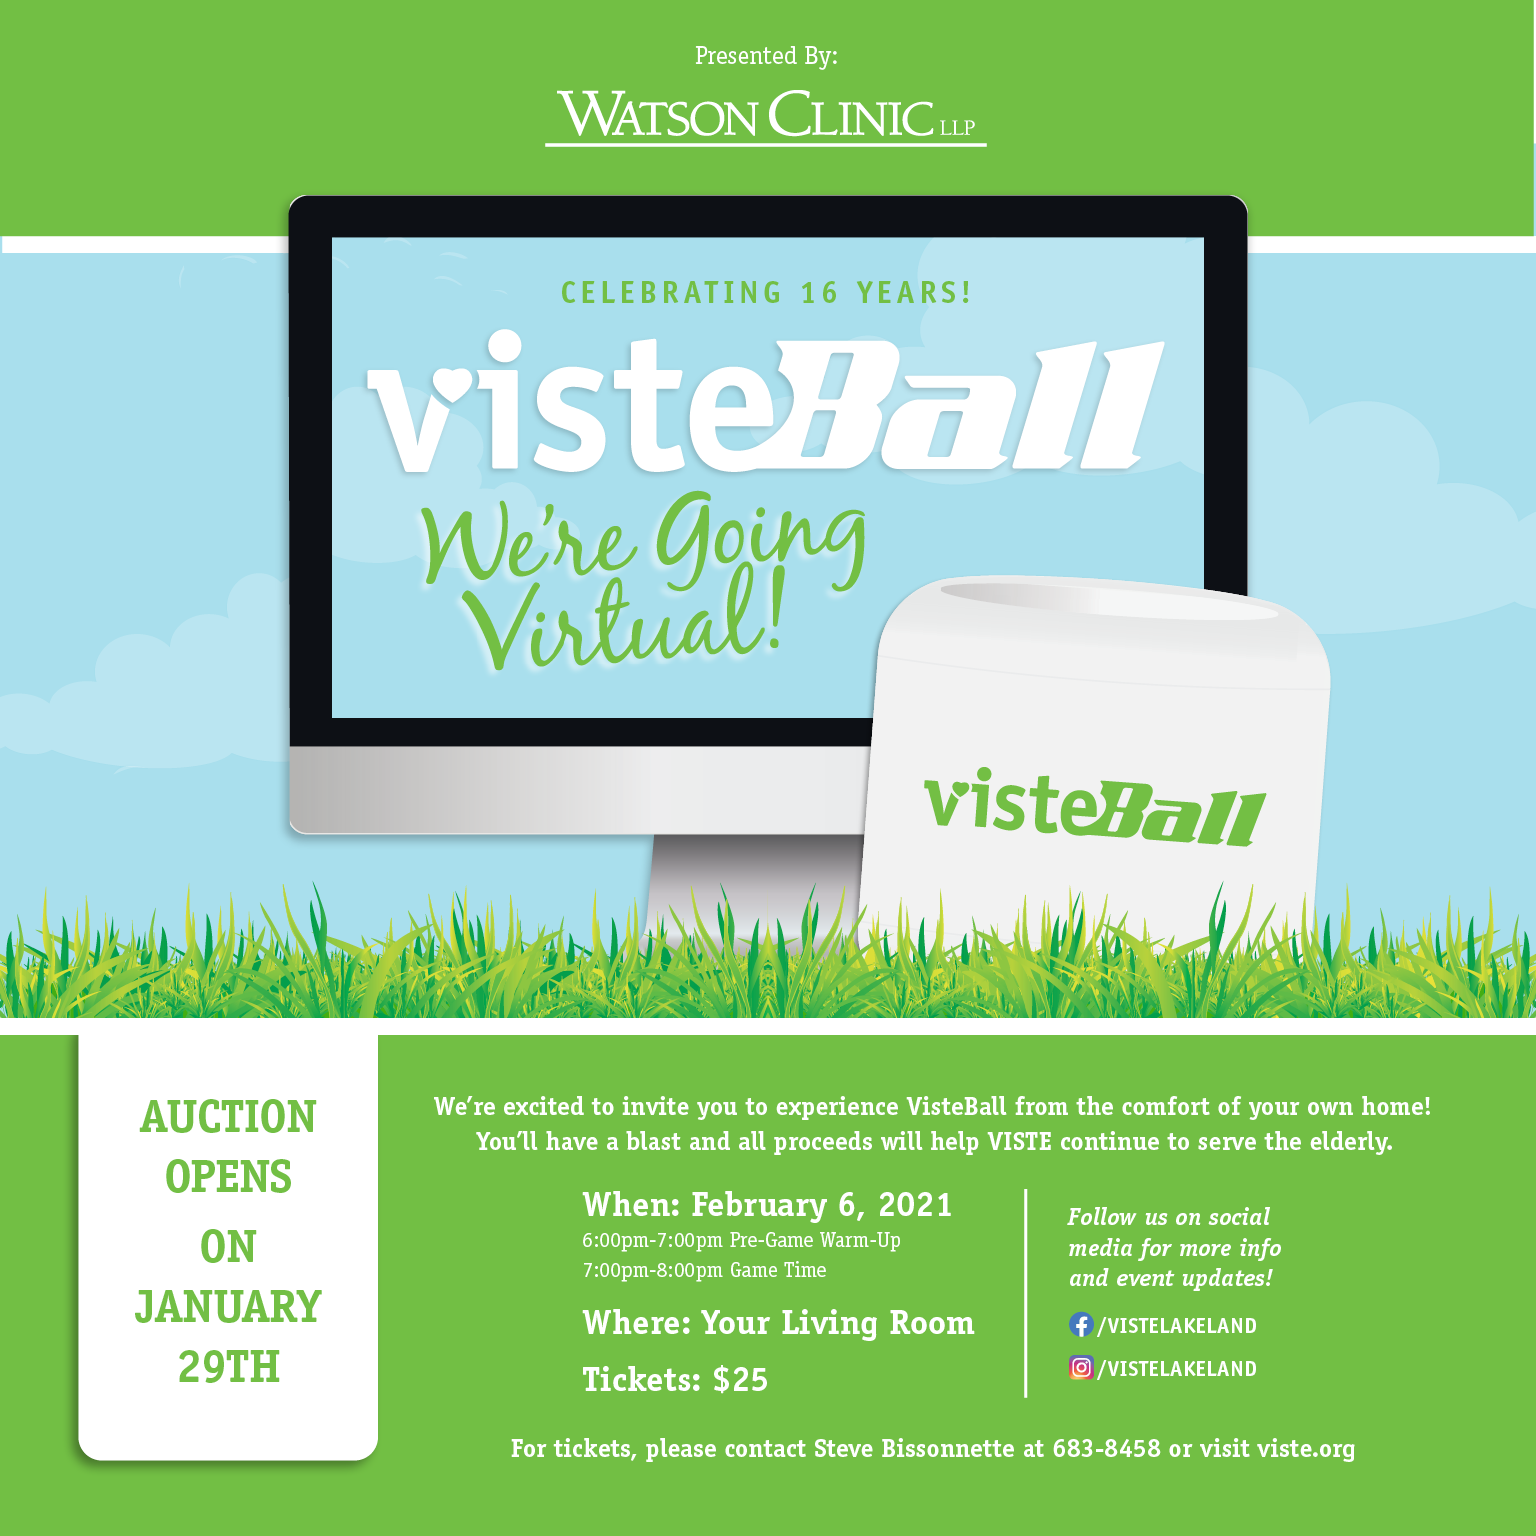 VisteBall_2021_Website 1536x1536_Info